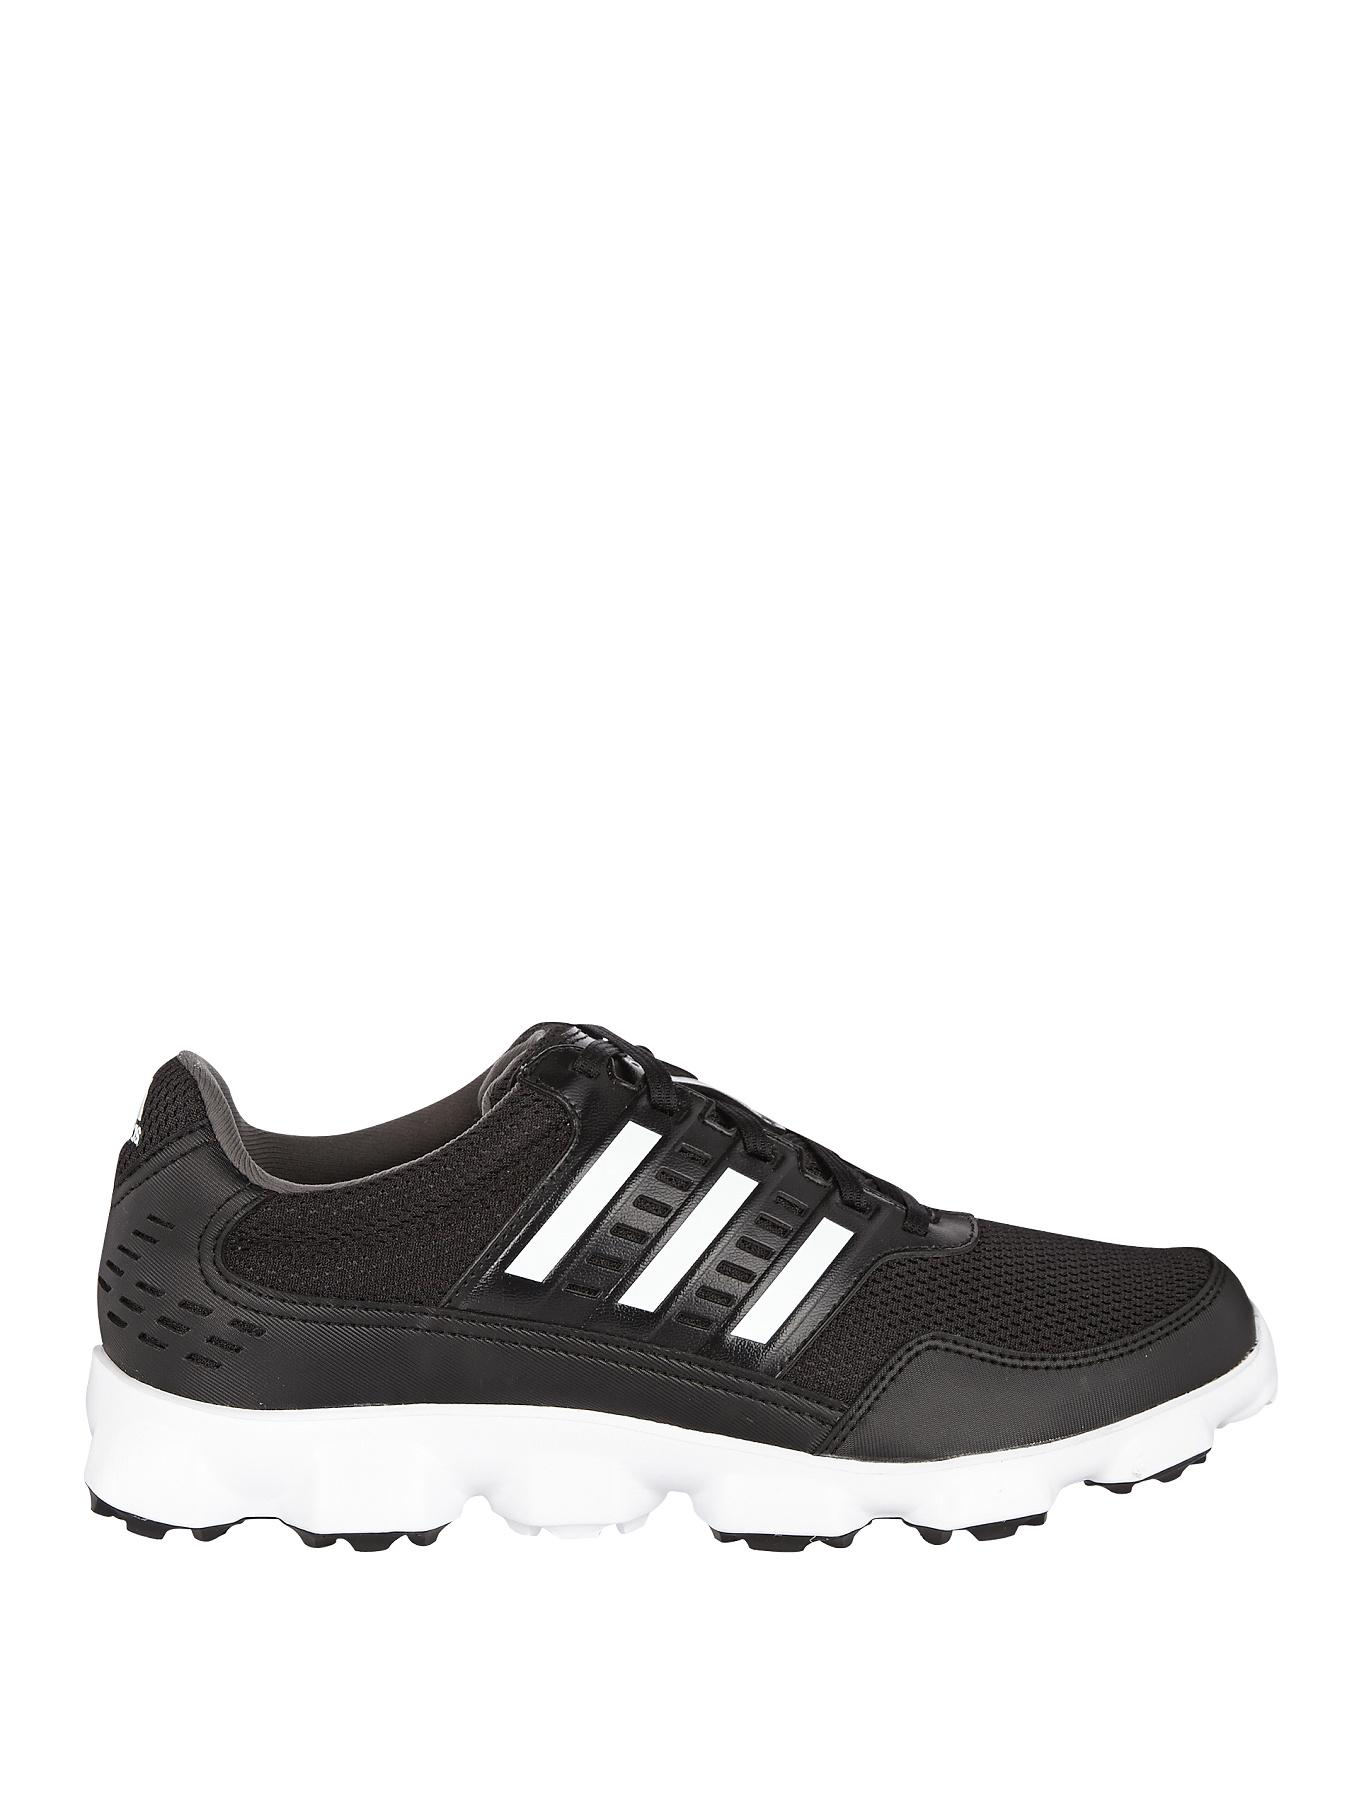 adidas Crossflex Sport Trainers - Black/White